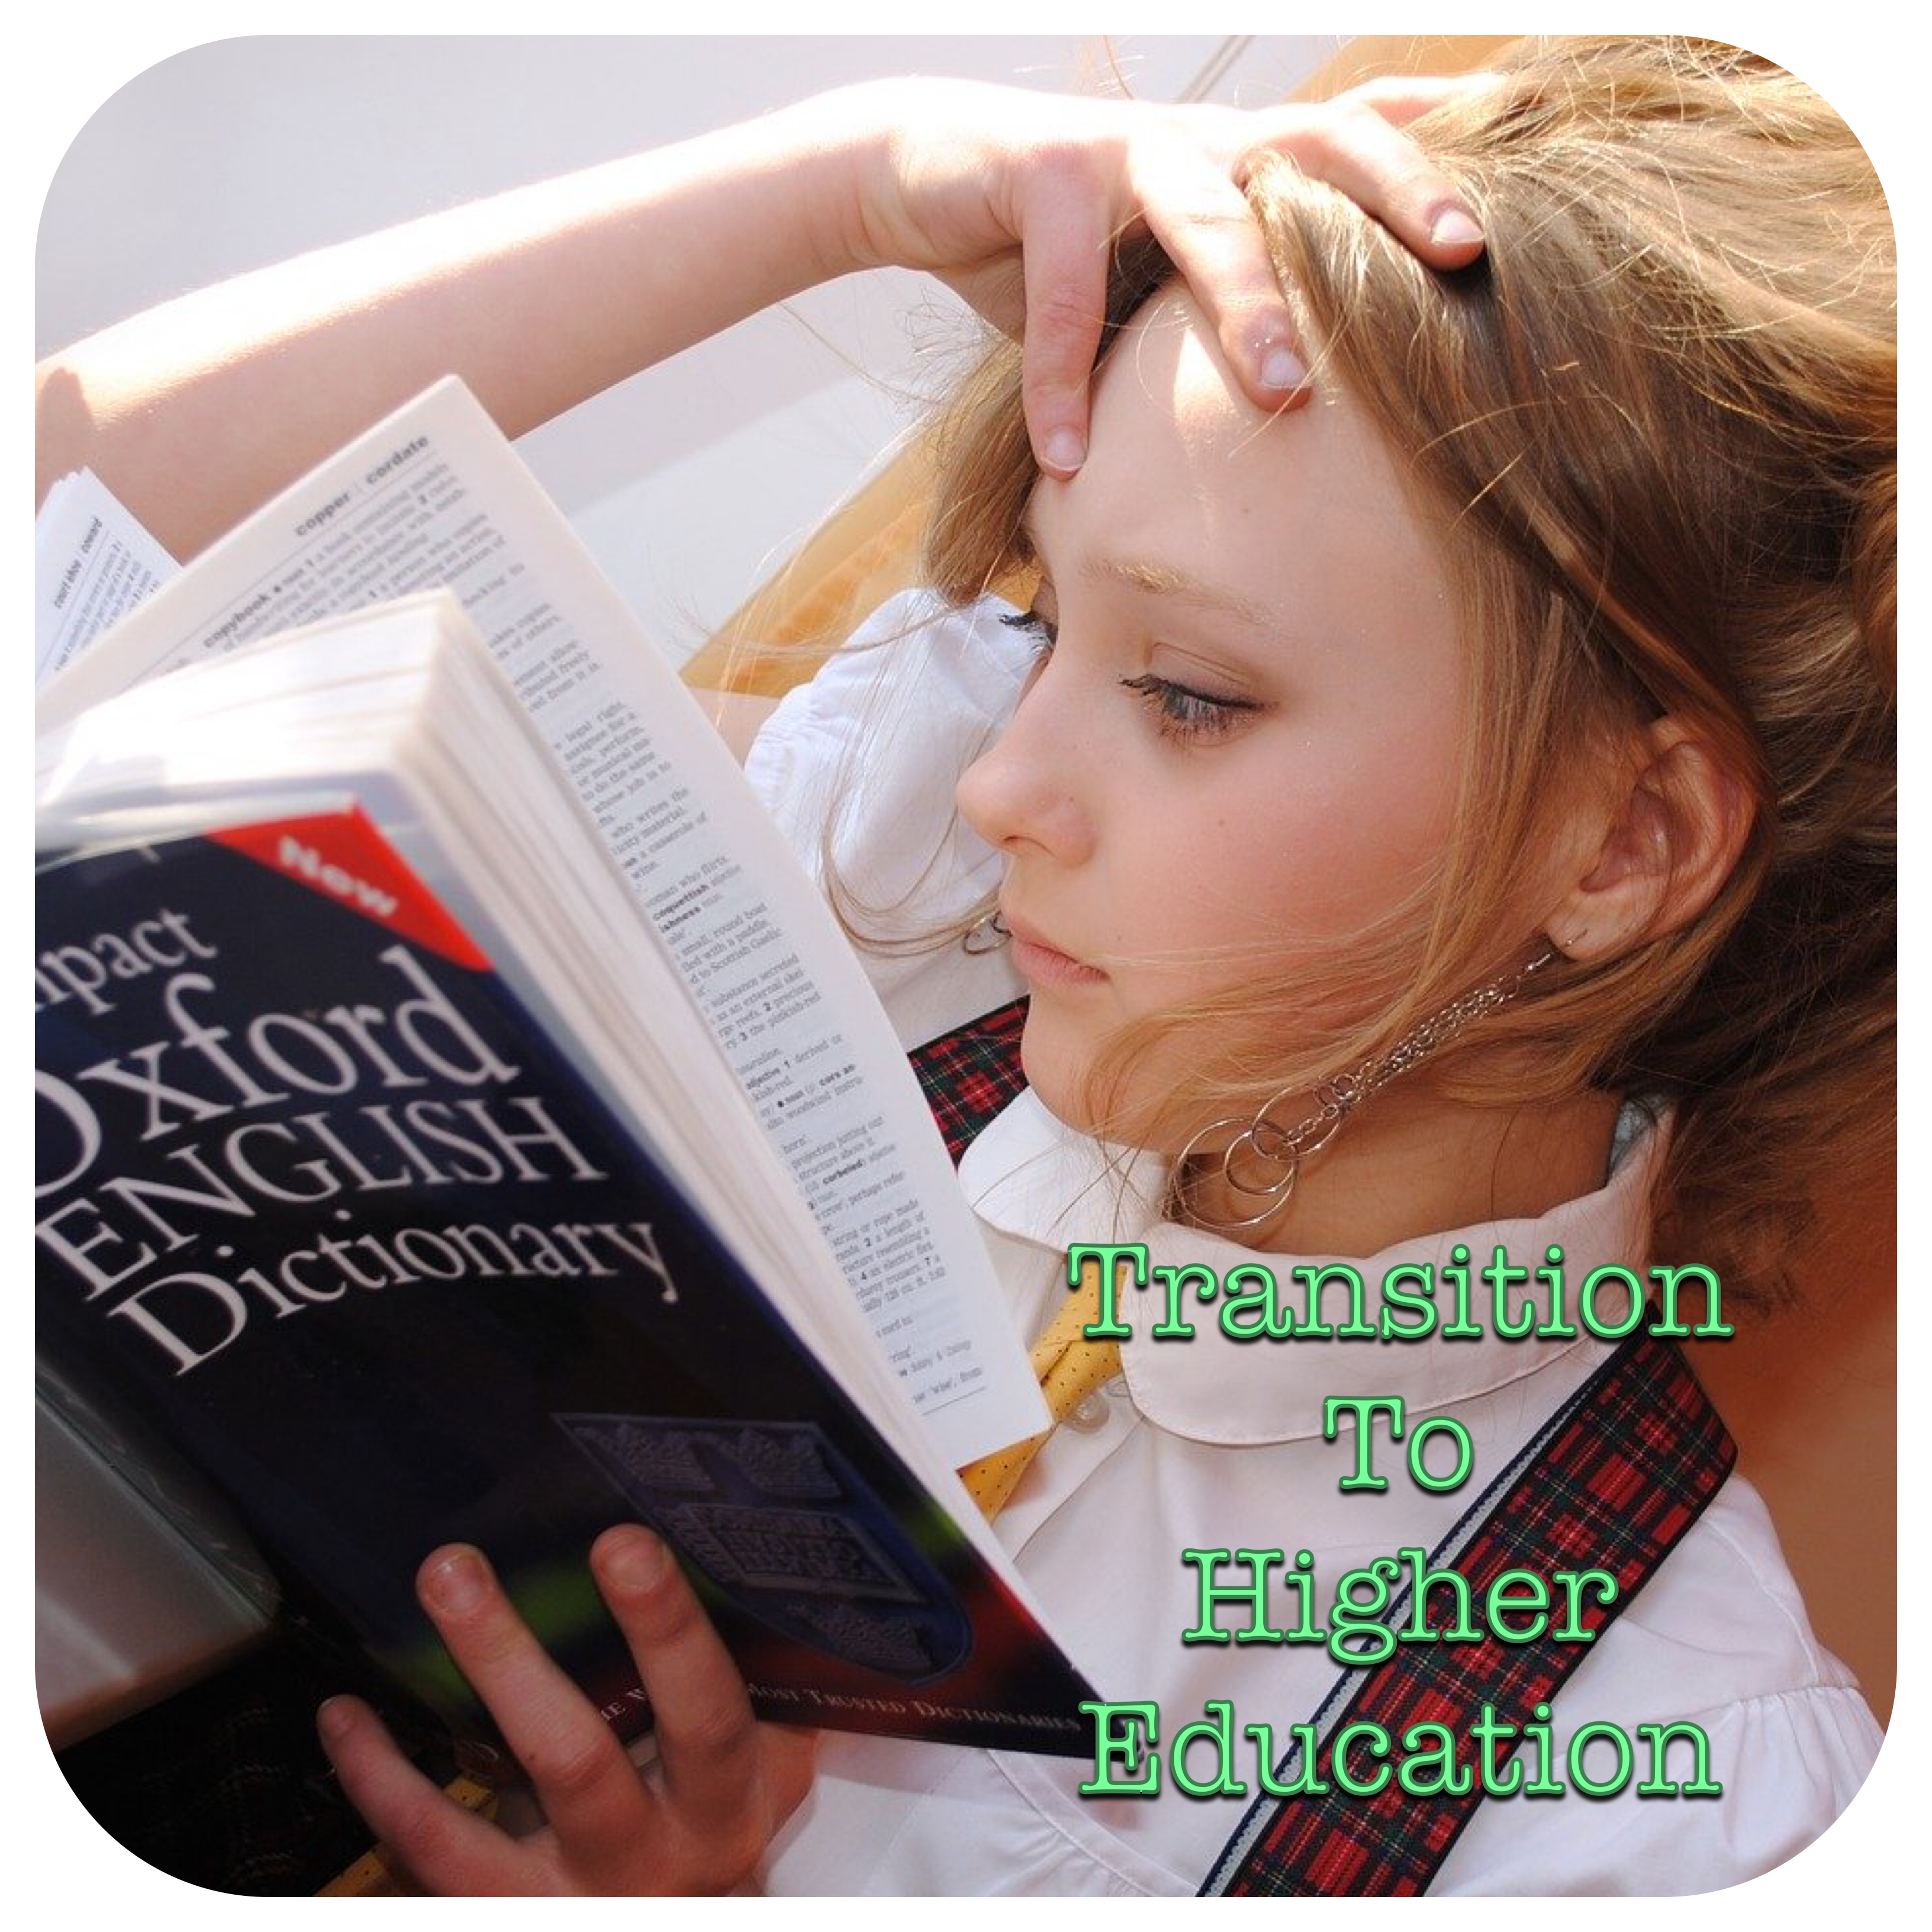 Transition to Higher Education (Girl reading dictionary)